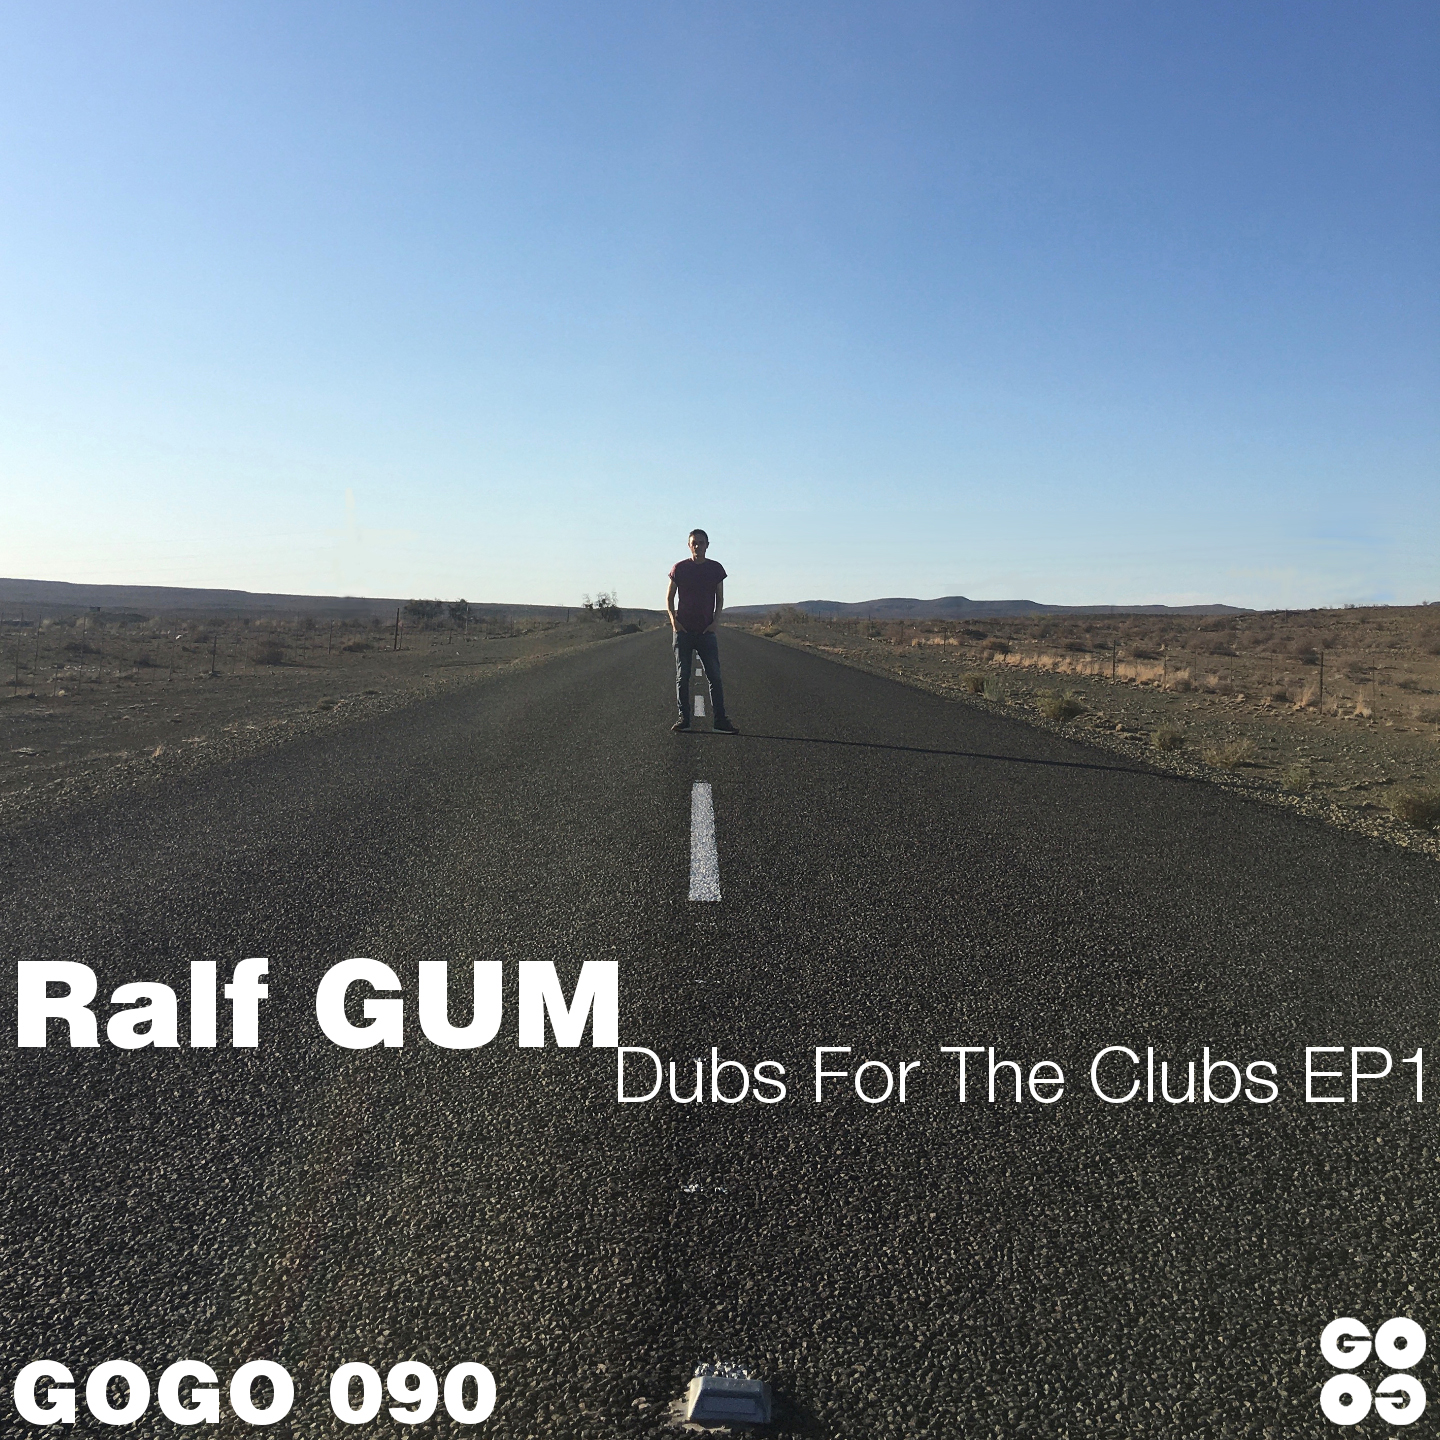 Ralf GUM – Dubs For The Clubs EP 1